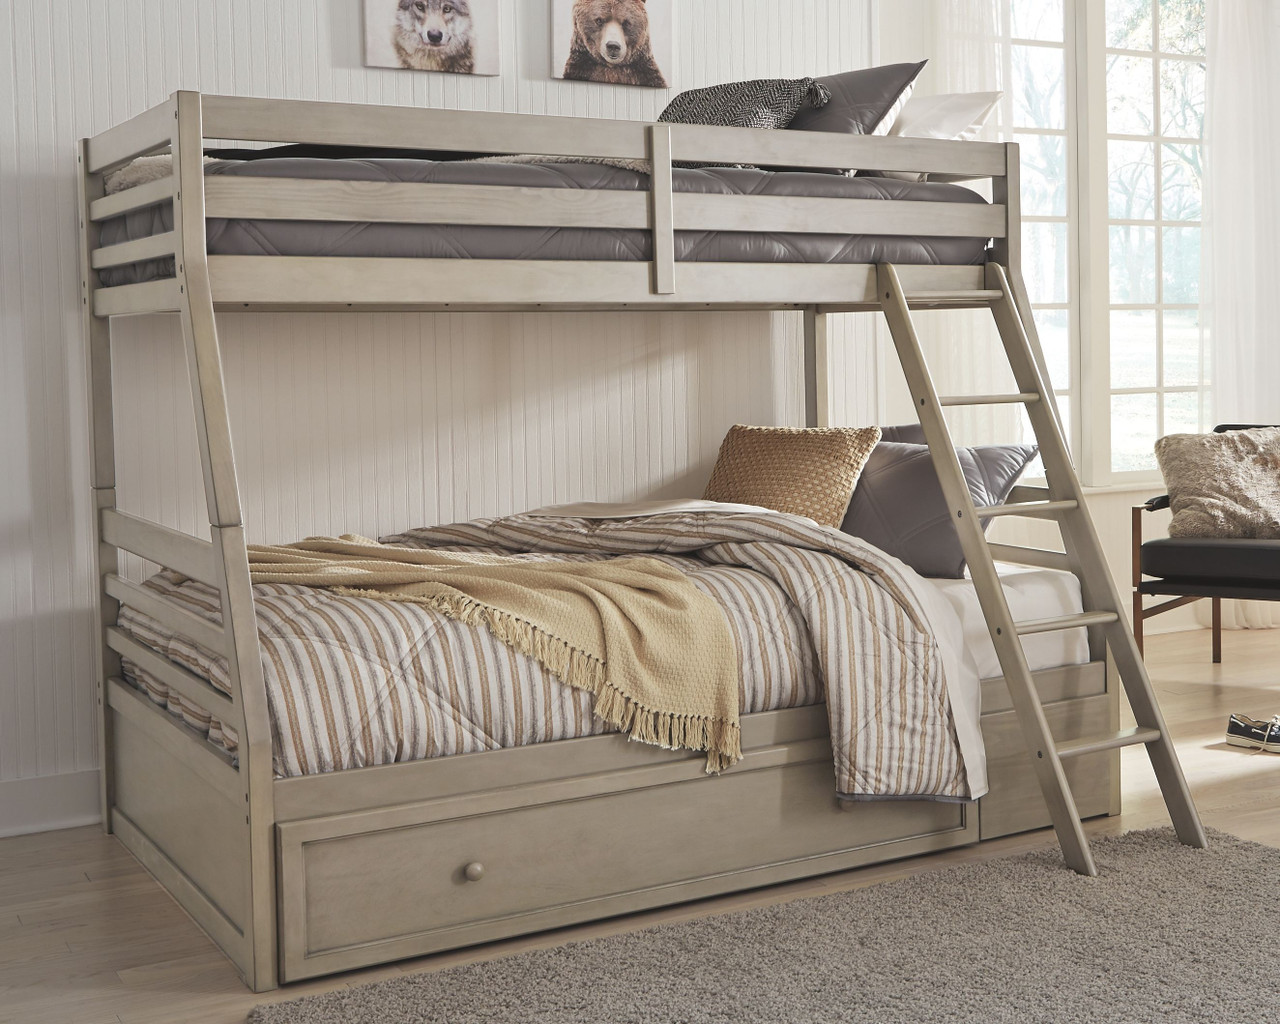 Lettner Light Gray Twin Over Full Bunk Bed With 1 Large Storage Drawer On Sale At American Furniture Of Slidell Serving Slidell La